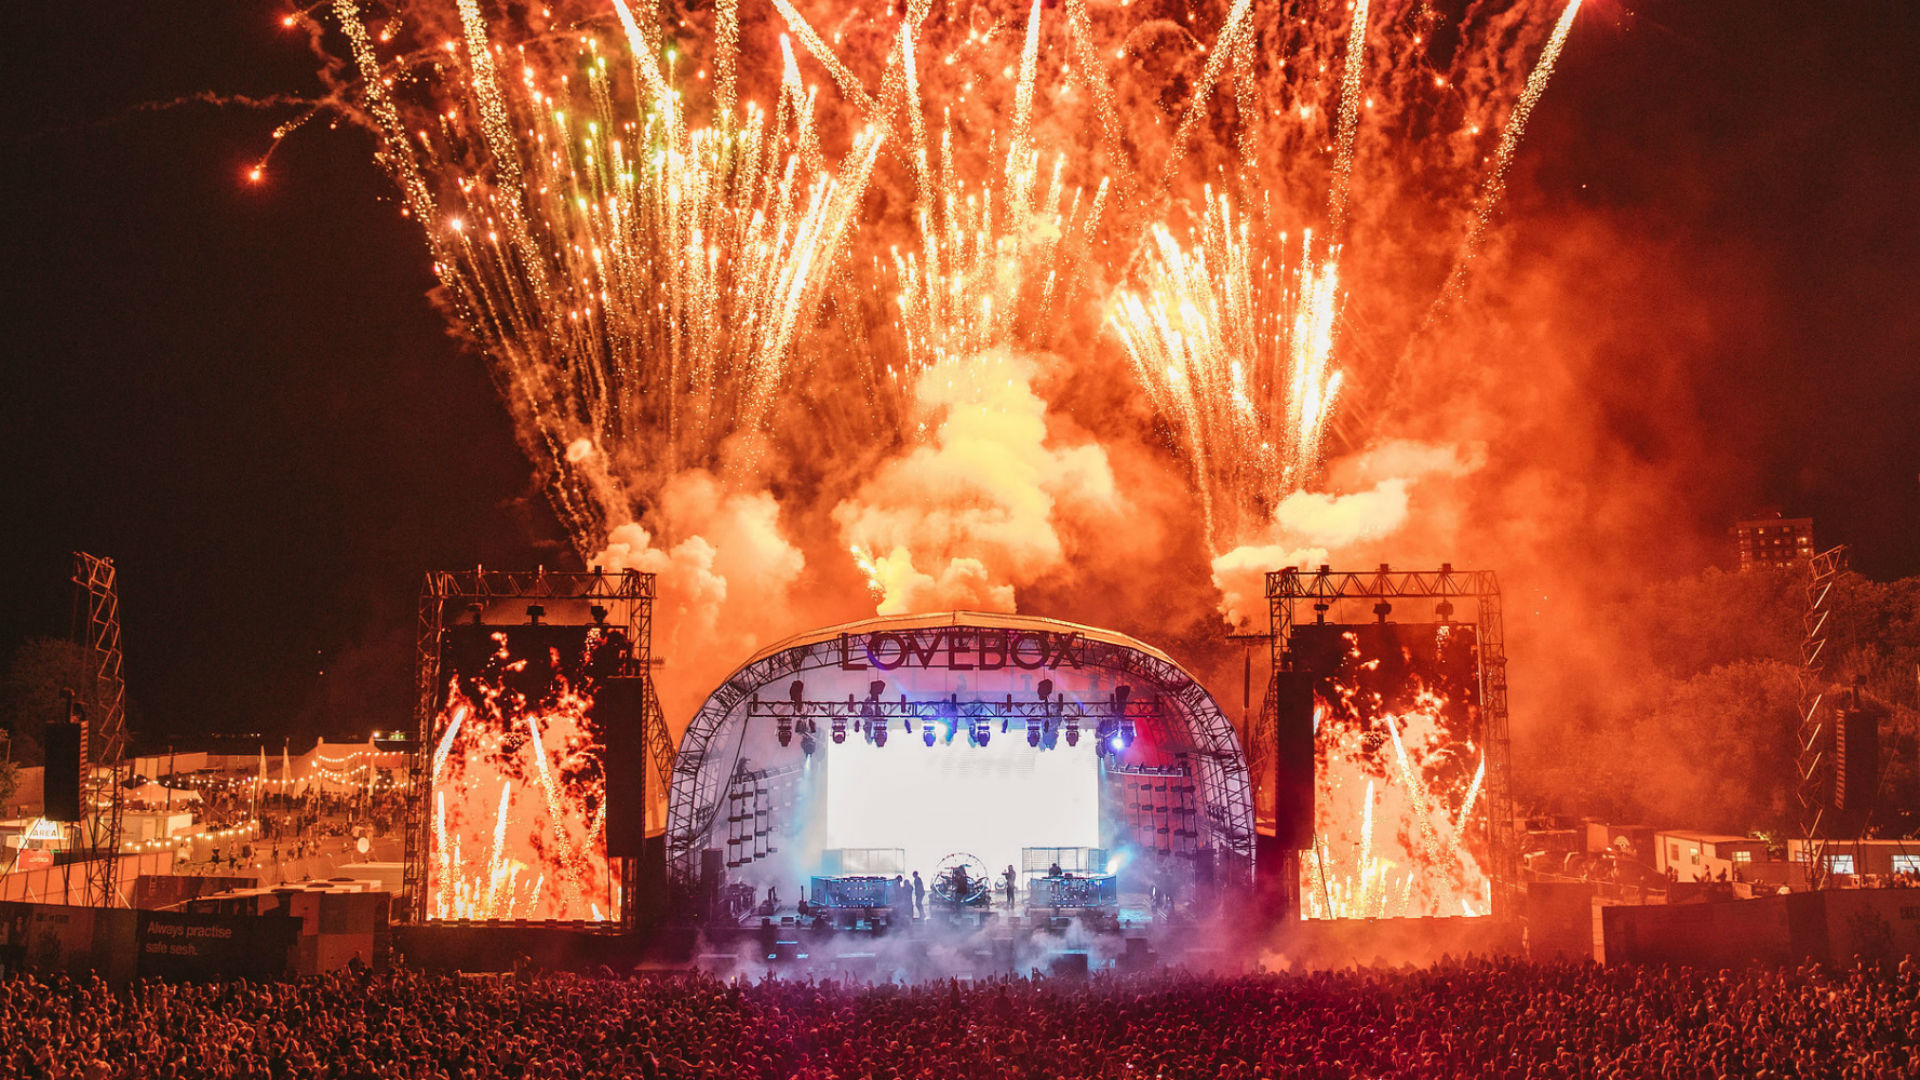 Image of fireworks lighting up the sky surrounding the stage at Lovebox.